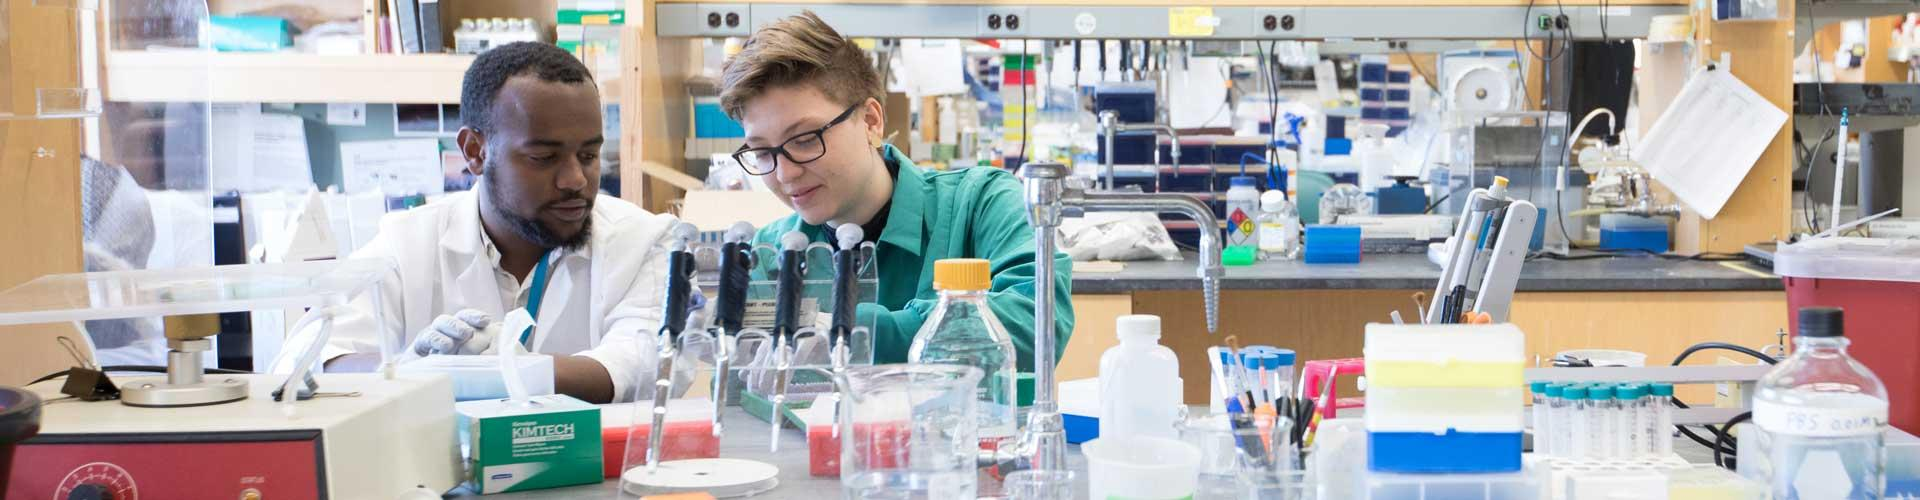 Young scientists in a research lab